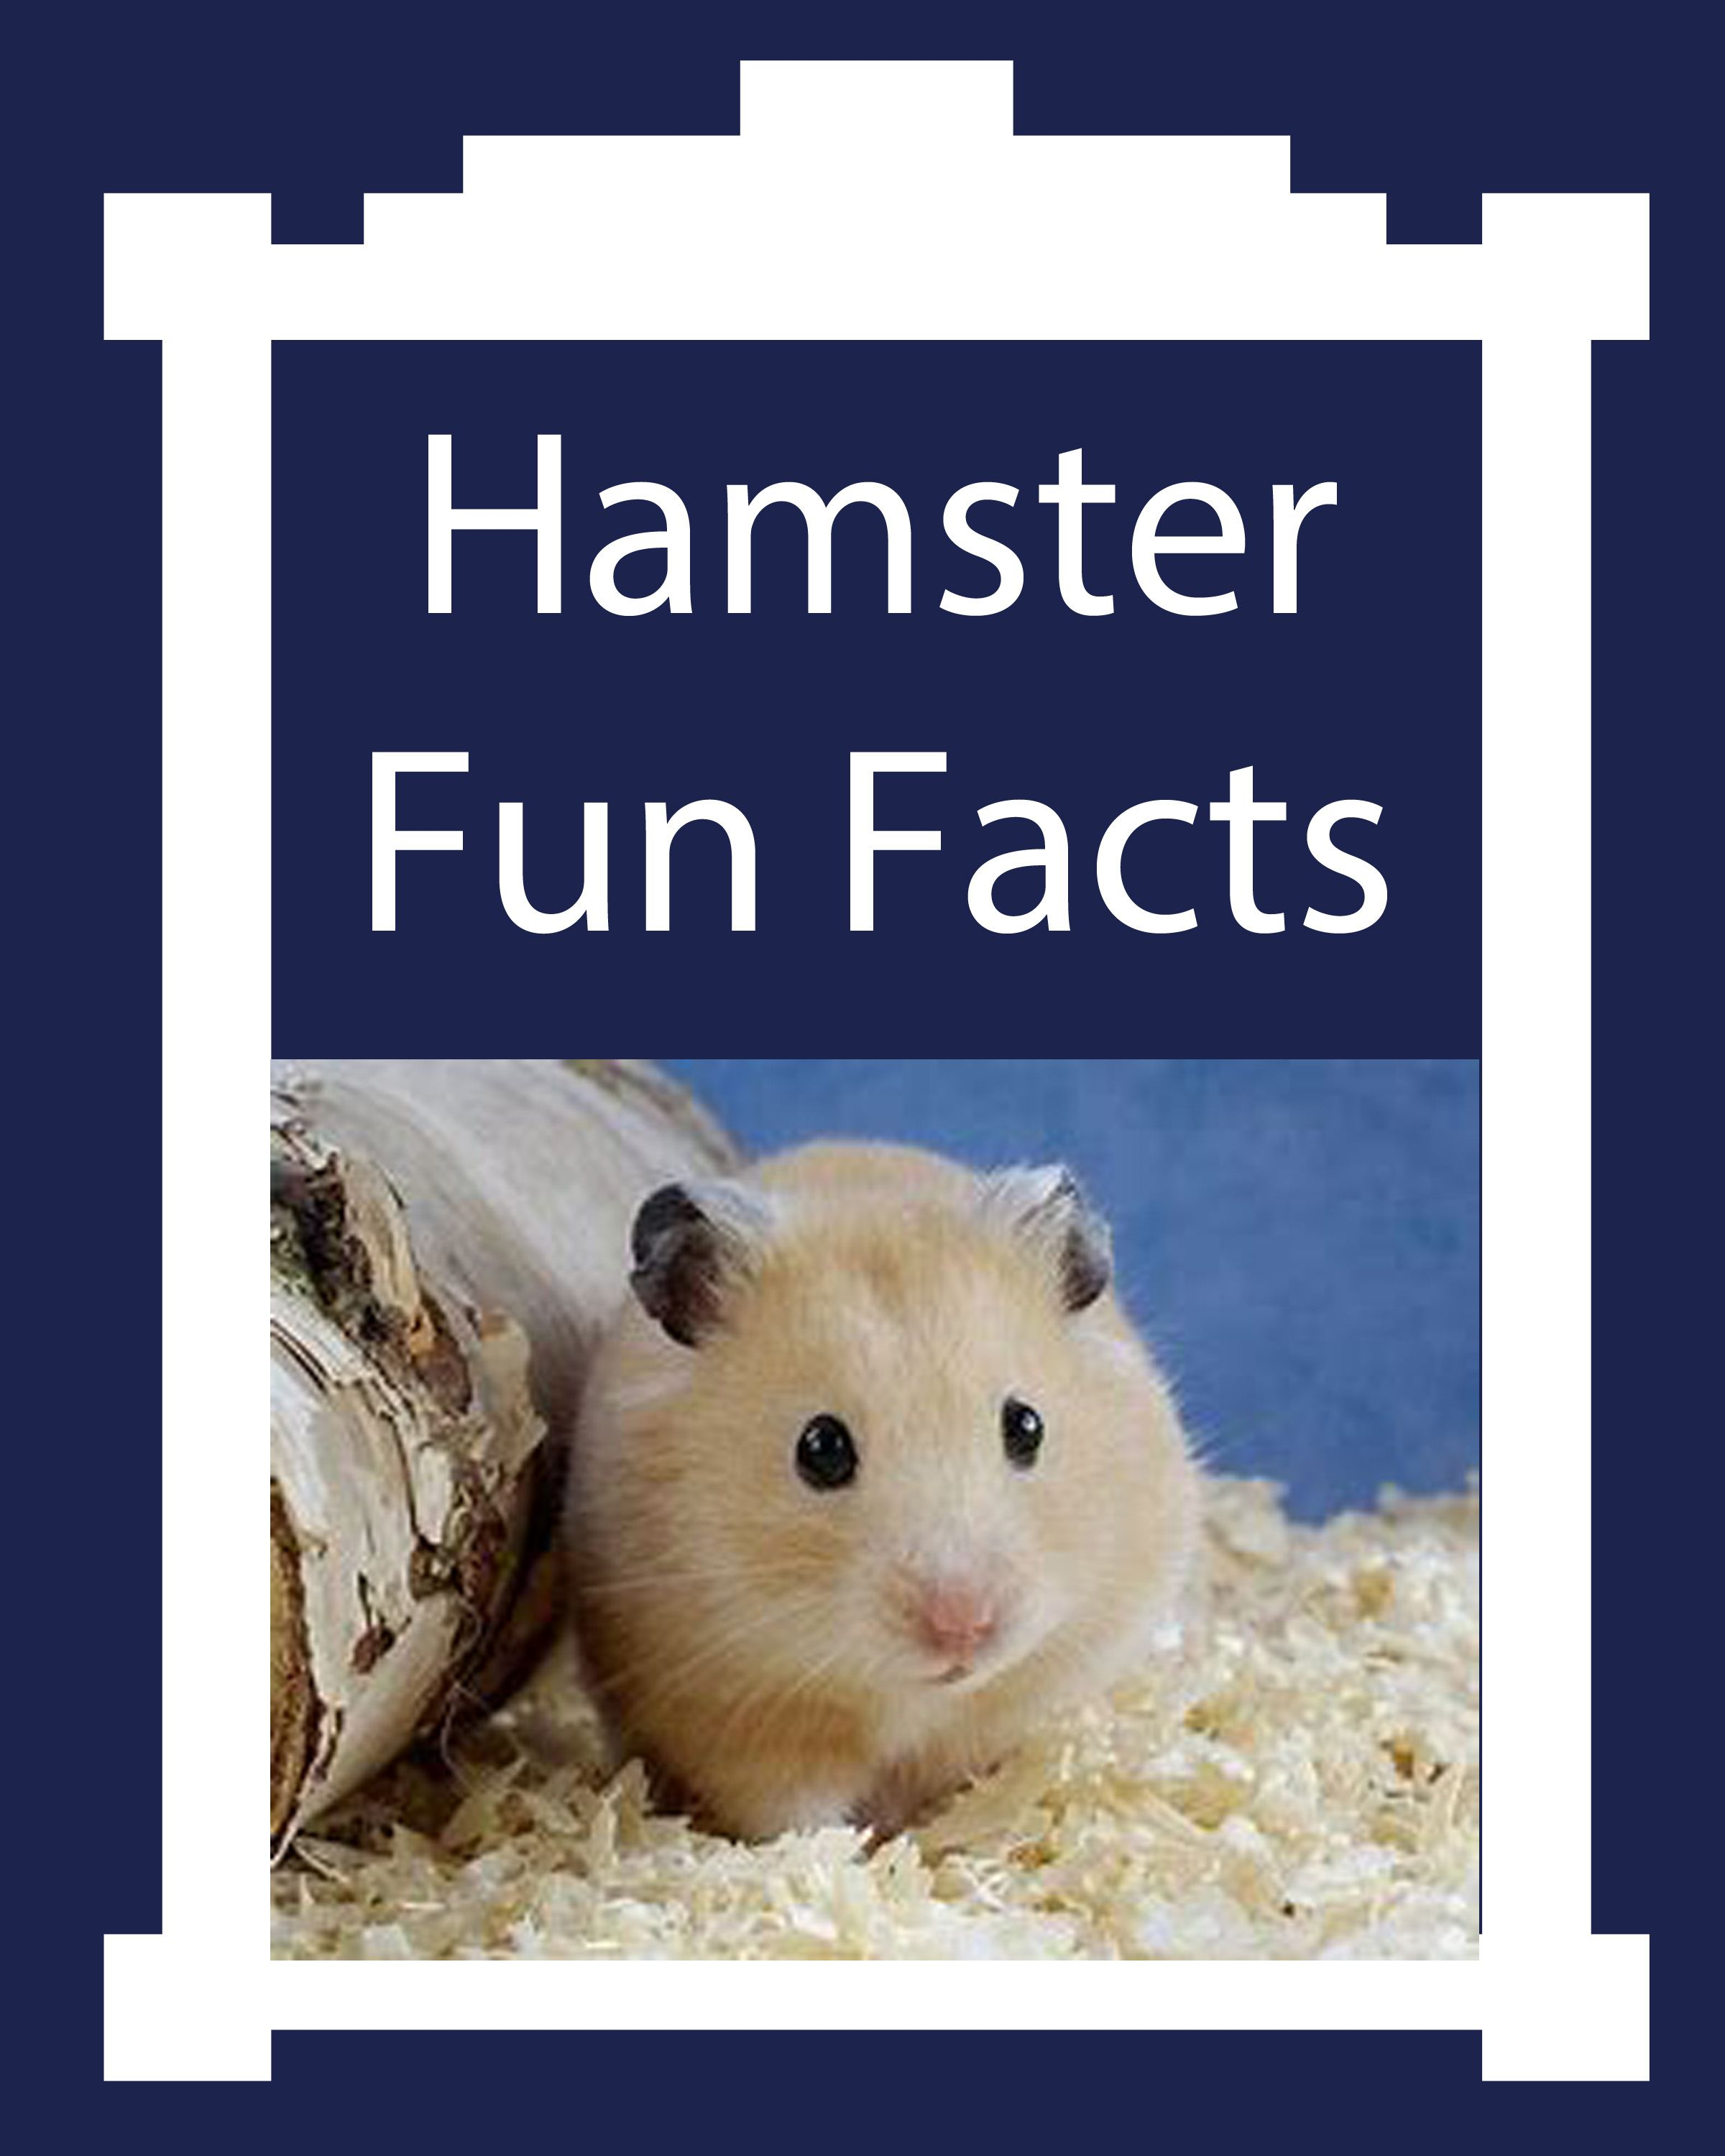 Hamster Fun Facts About These Tiny Pets In 2020 Fun Facts For